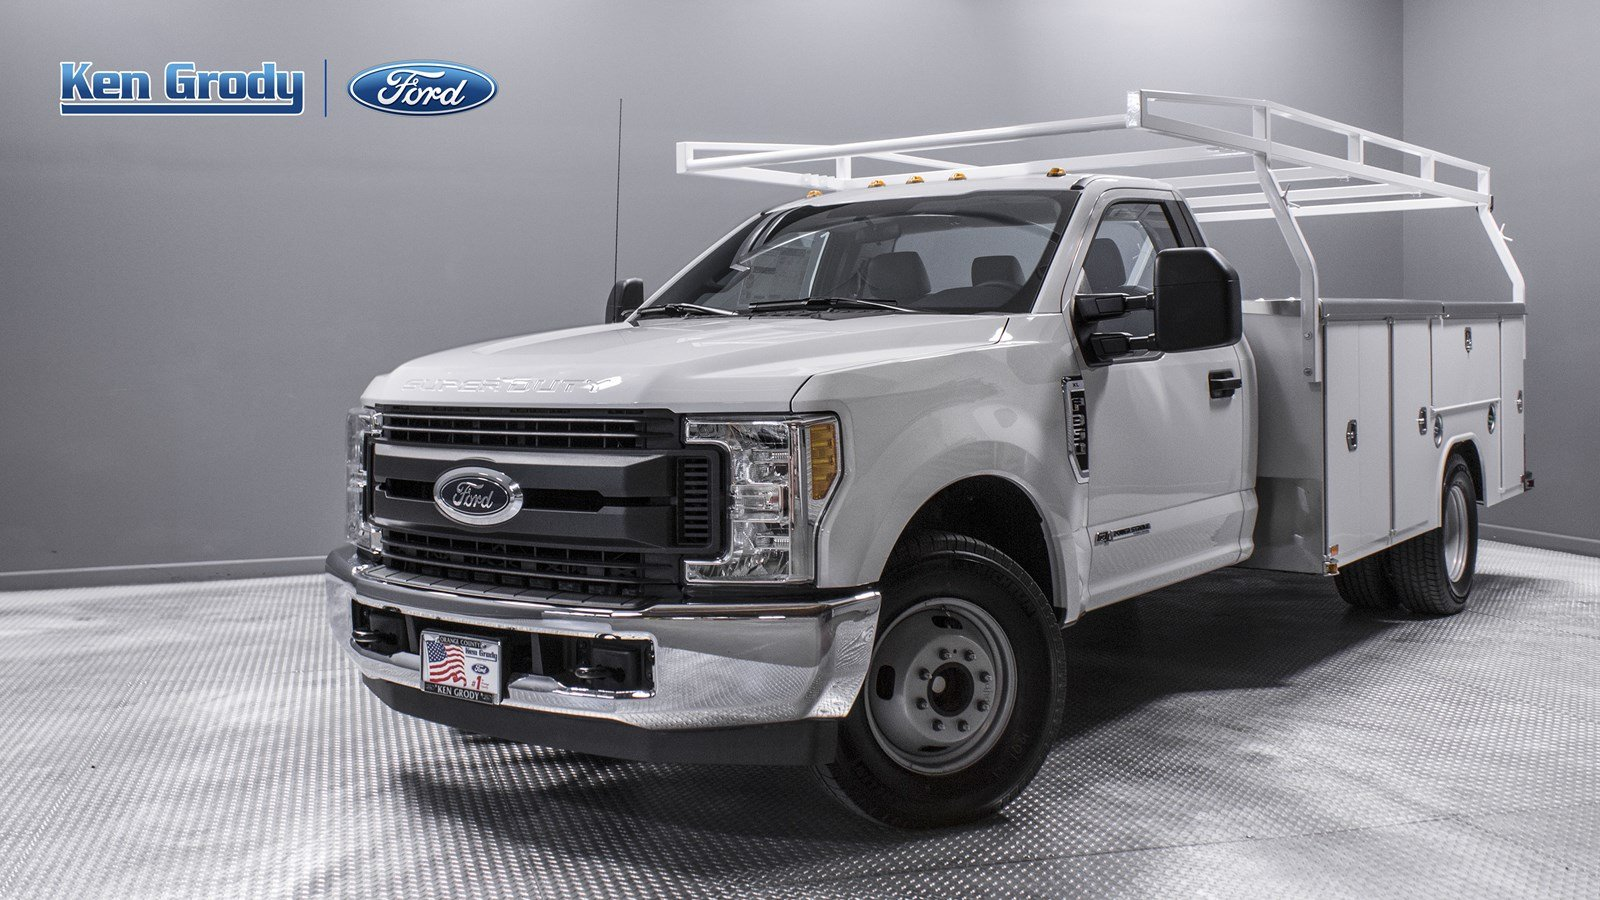 New 2017 Ford Super Duty F 350 DRW XL Regular Cab Chassis Cab in